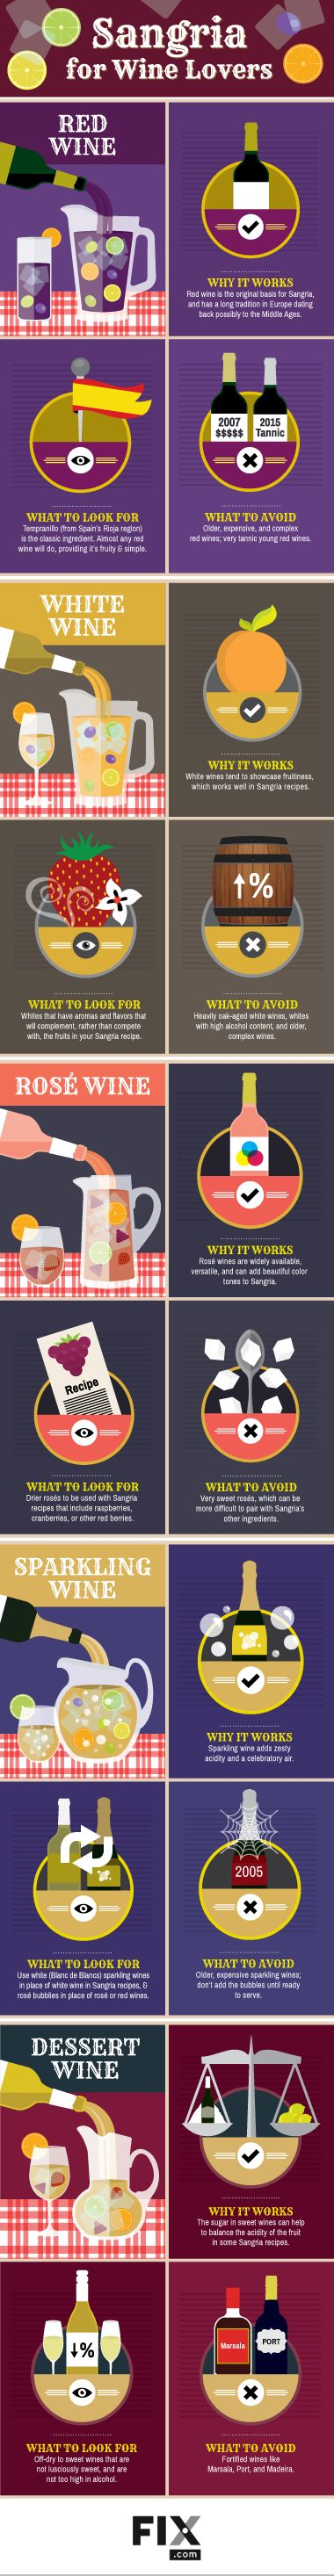 Sangria for Wine Lovers | Fix.com